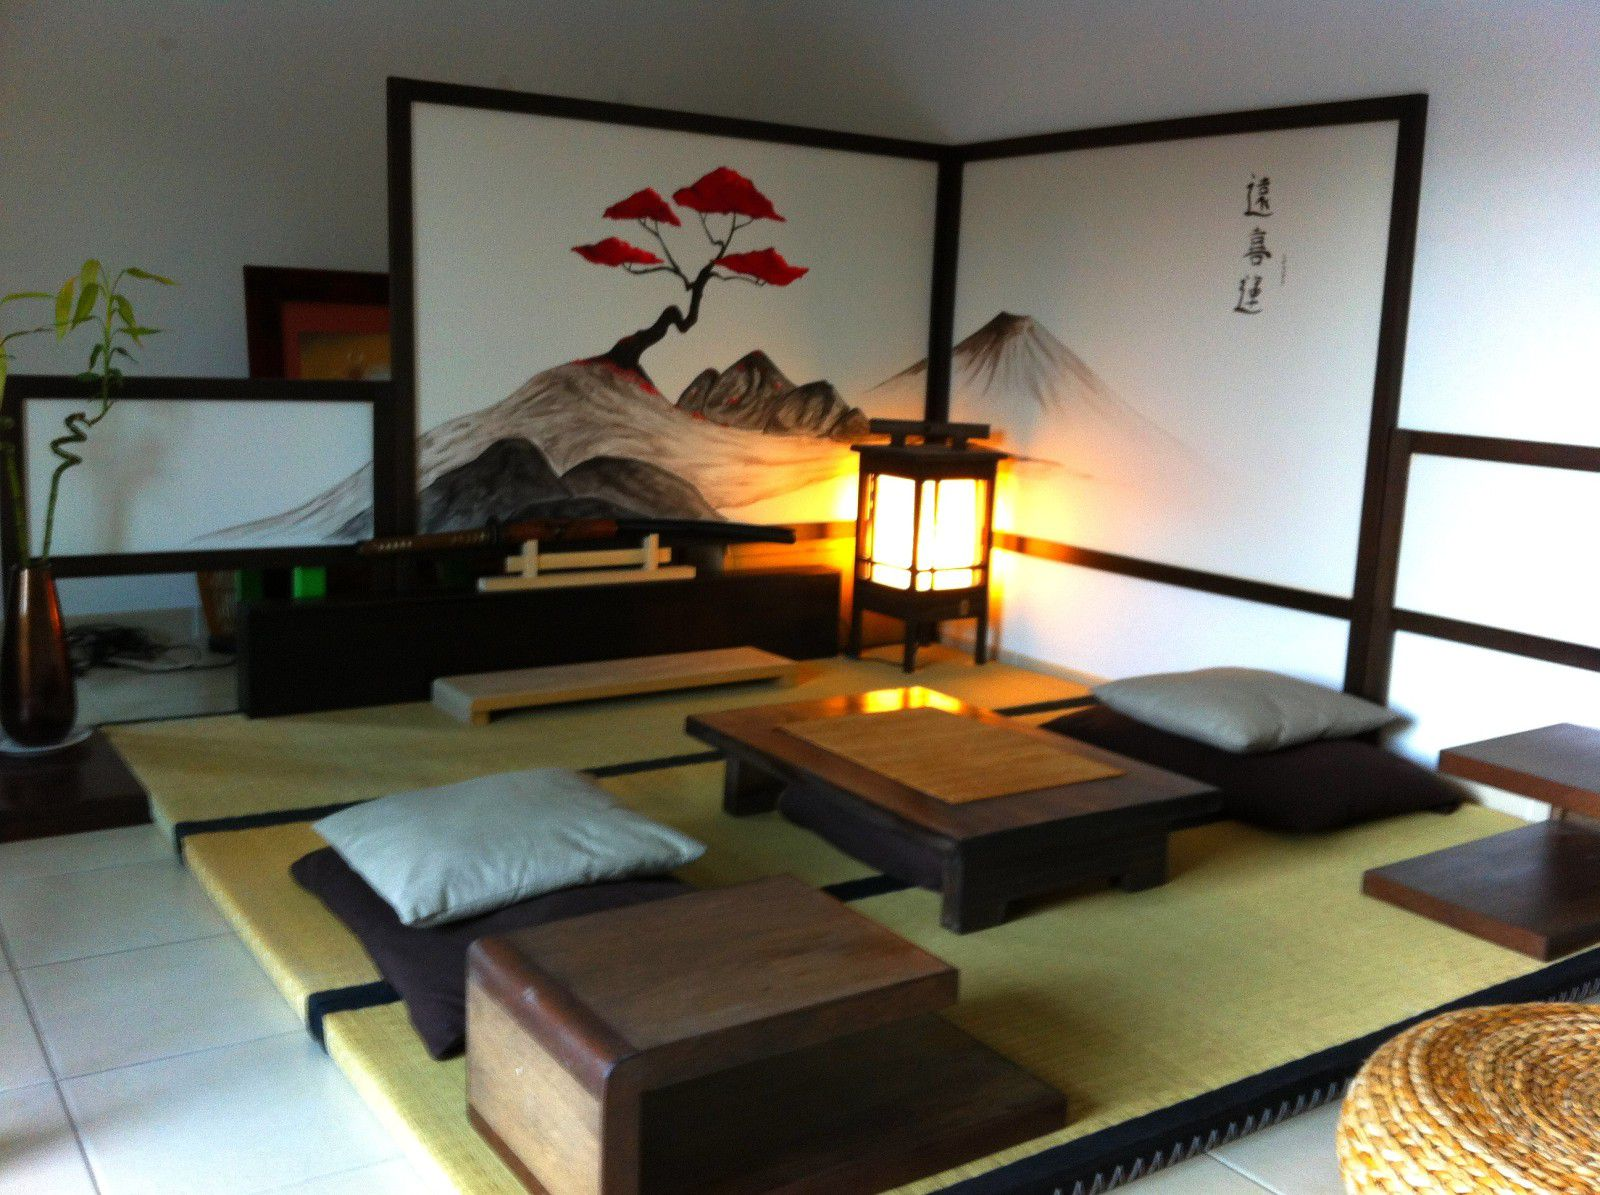 Deco chambre zen japonais fashion designs for Design japonais mobilier